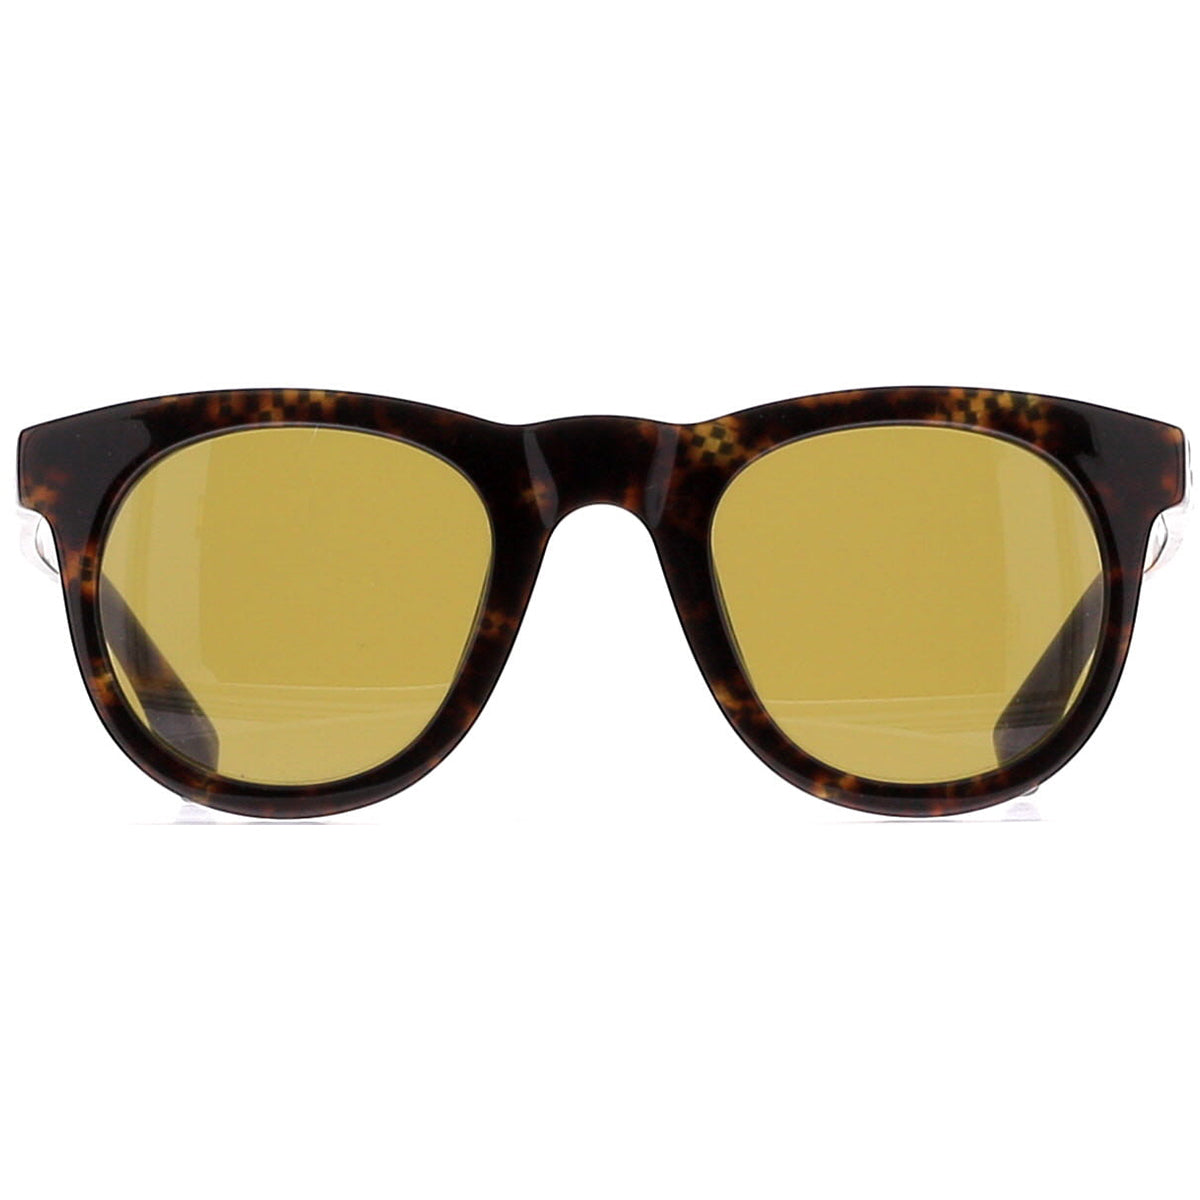 Dries Van Noten DVN133 C4 Sun Tortoiseshell Marble/ Brass/ Dark Brown